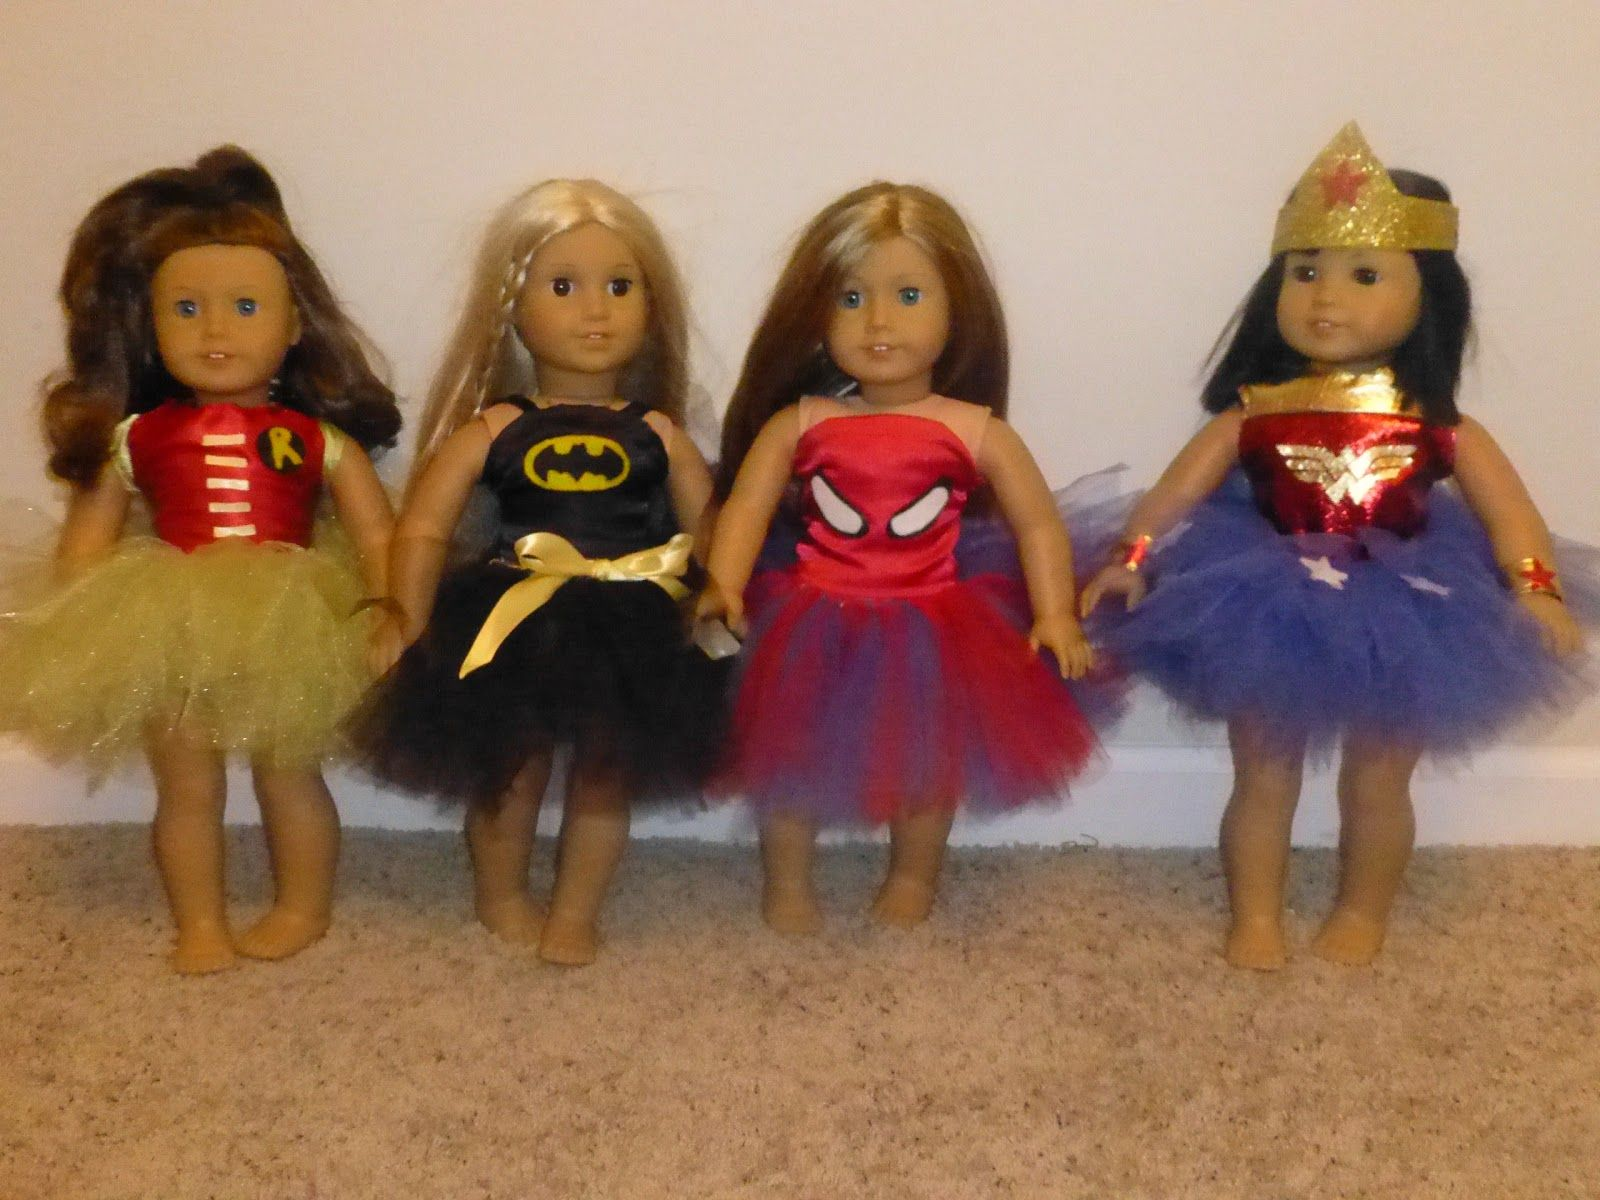 american girl doll superhero outfits cameron hollyer cameron hollyer cameron hollyer cook please make these - How To Make A Doll Costume For Halloween